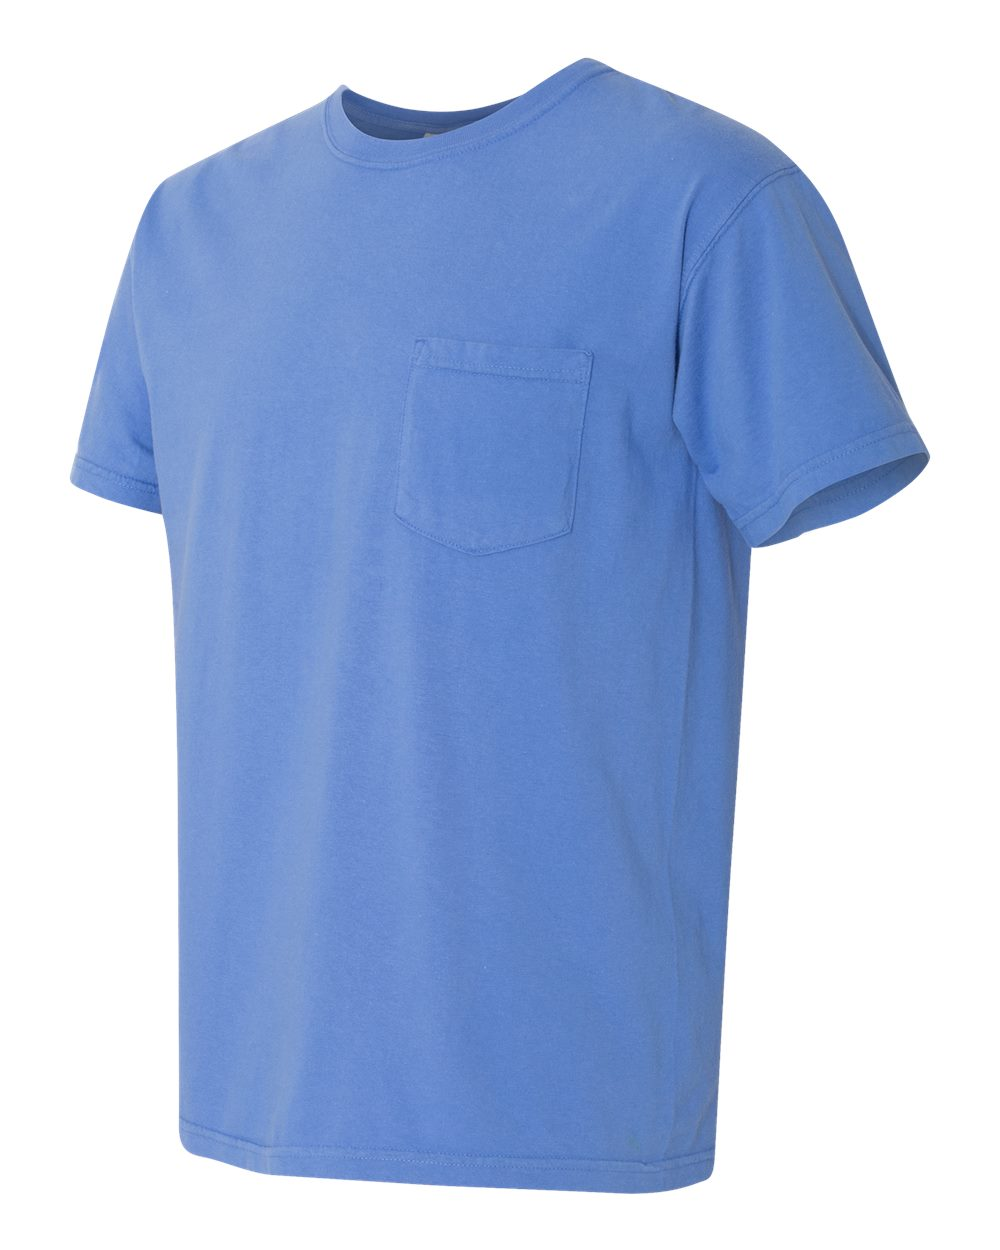 Comfort-Colors-Men-039-s-6-1-oz-Garment-Dyed-Pocket-T-Shirt-6030CC-S-3XL thumbnail 95